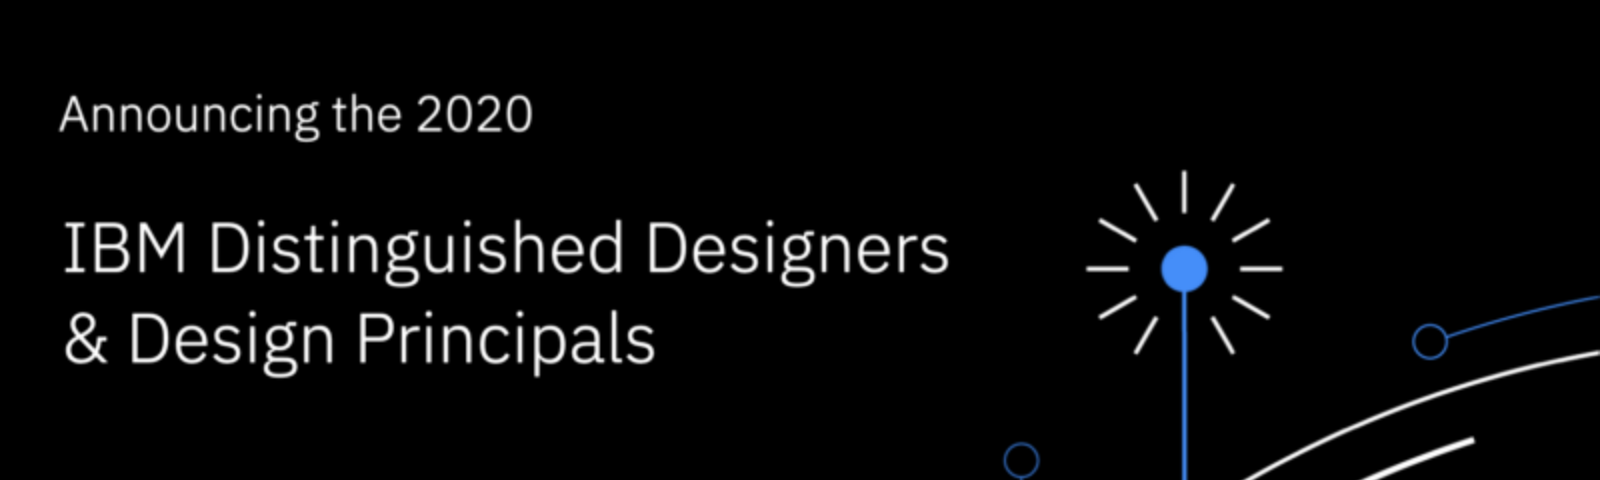 "Image with text that says ""Announcing the 2020 IBM Distinguished Designers and Design Principals"""